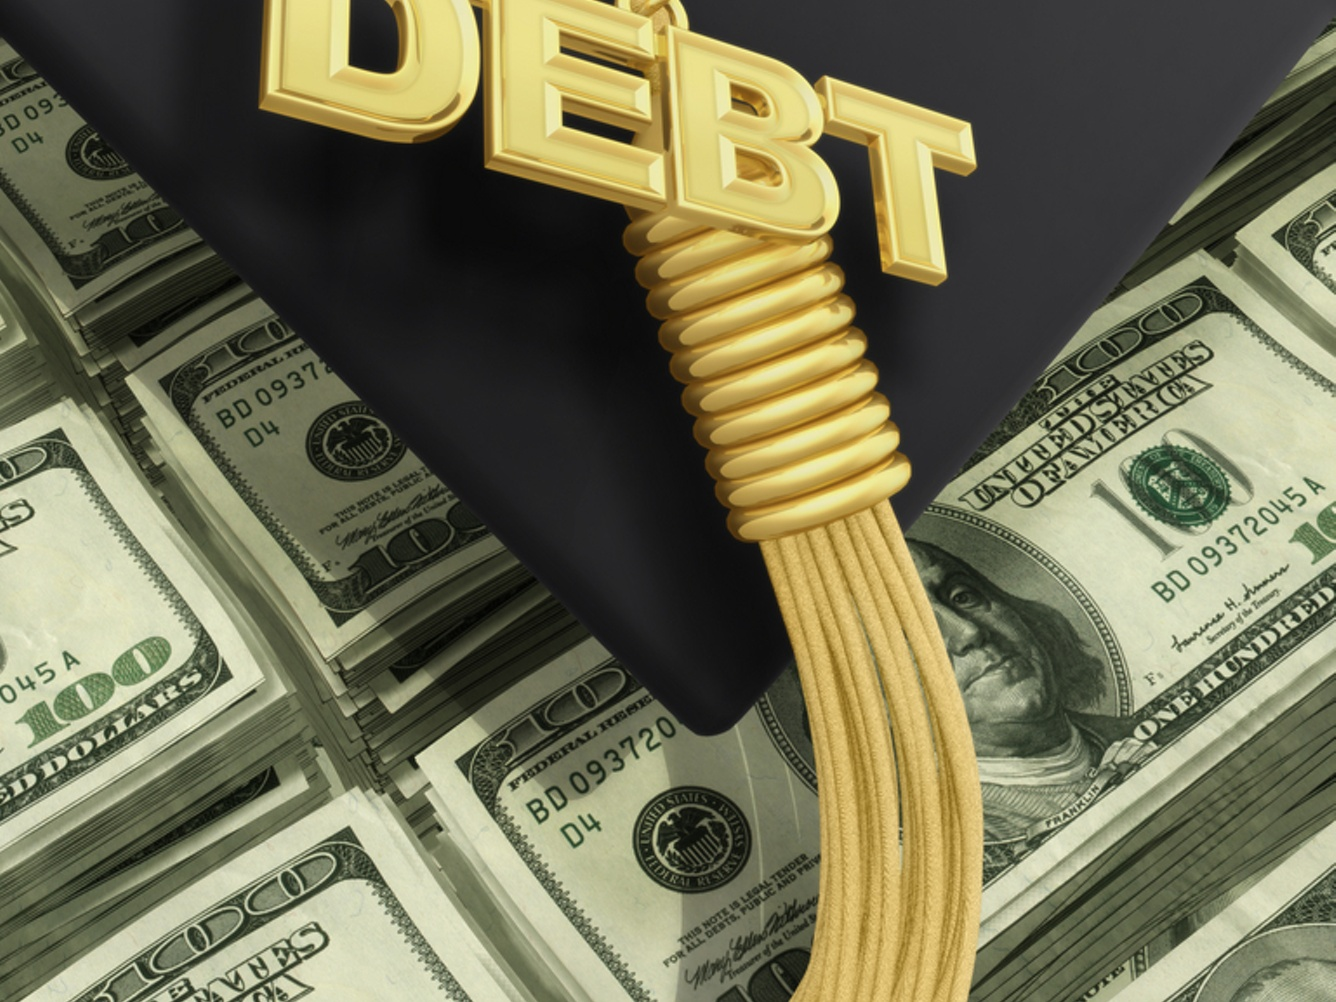 US Debt Interest Rate Hikes Again